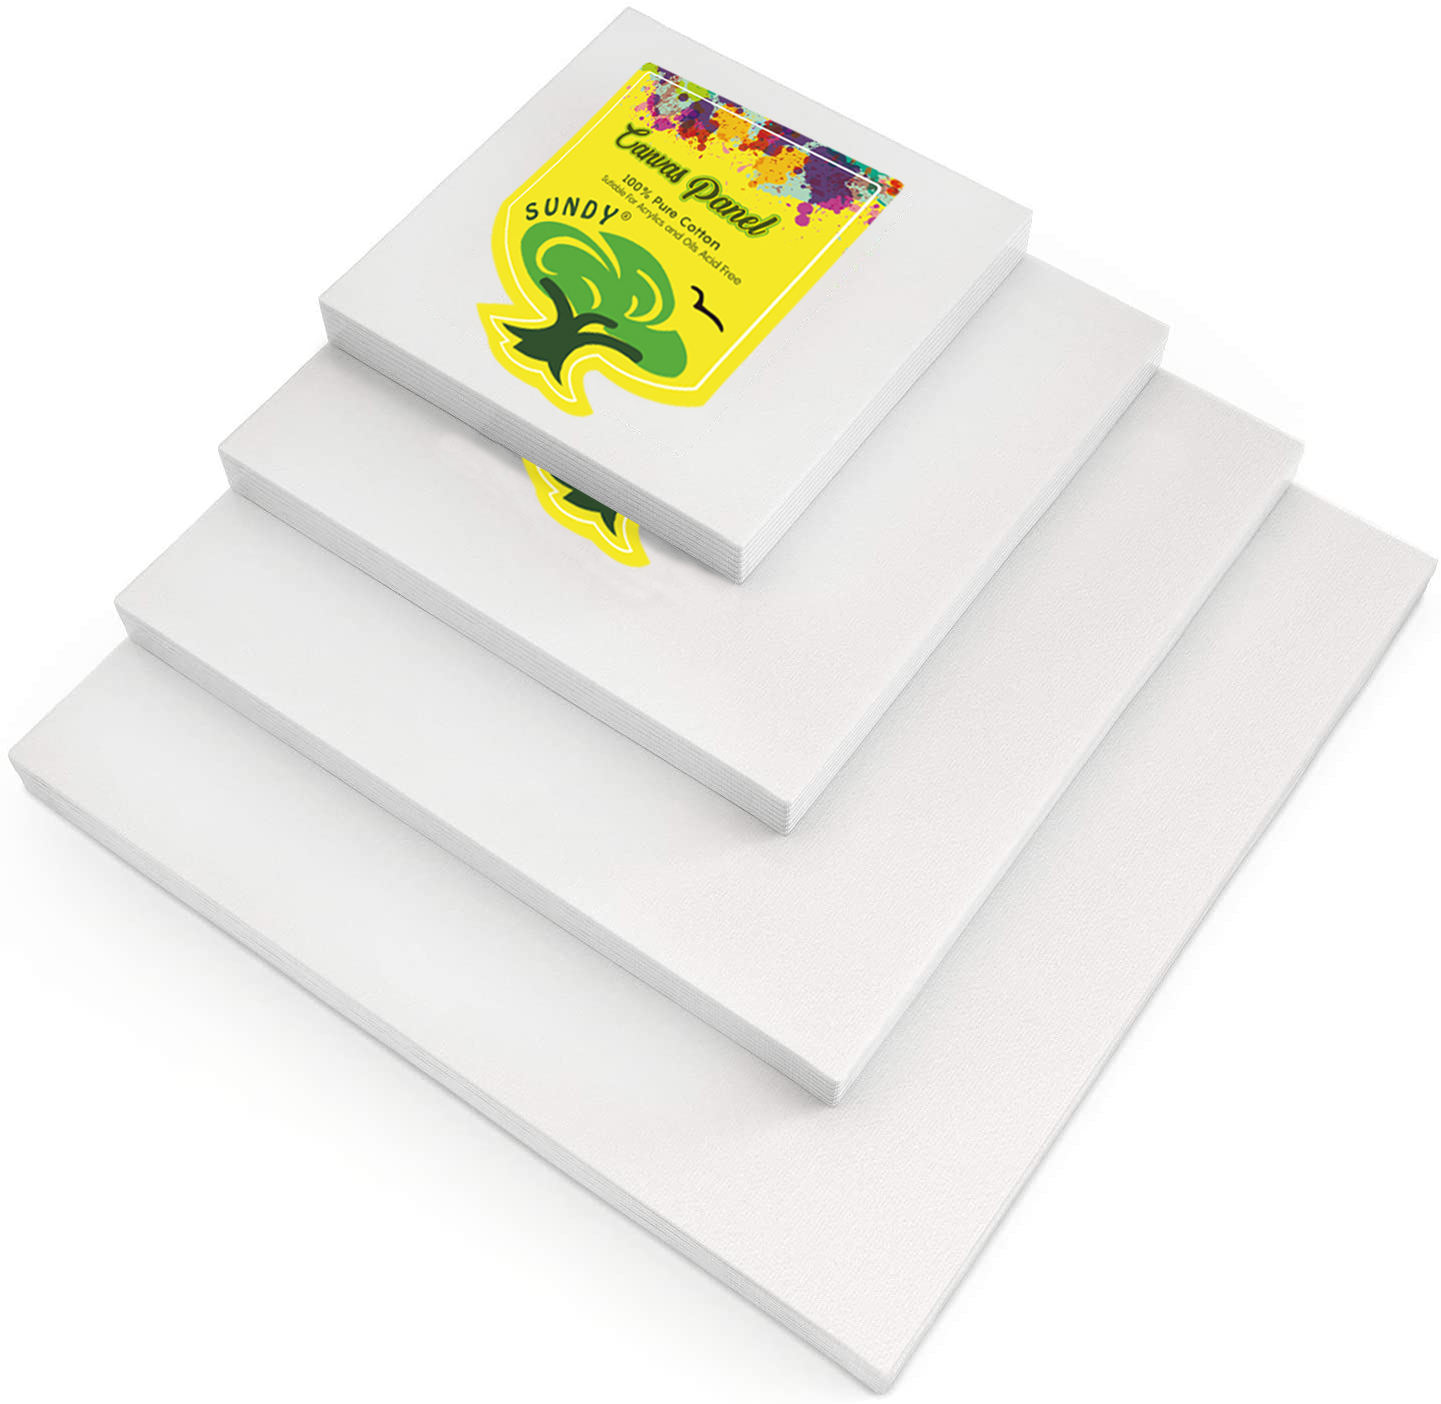 Artlicious cheap wholesale artist 100 blank cotton 8*10 inch art canvas panel boards for painting